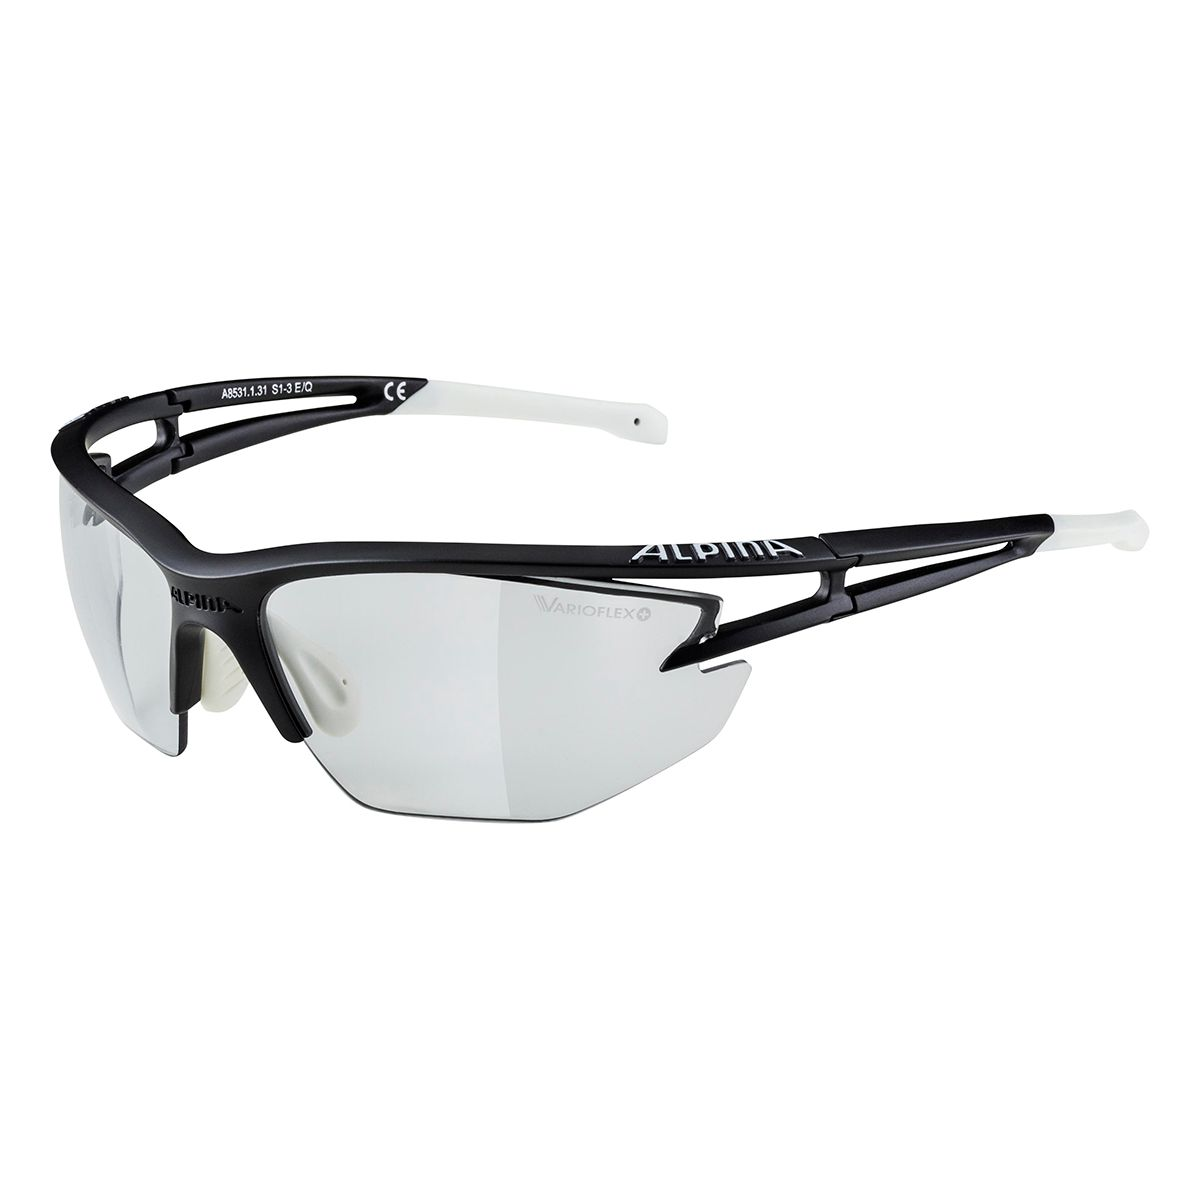 ALPINA EYE 5 HR VL+ sports glasses | Briller